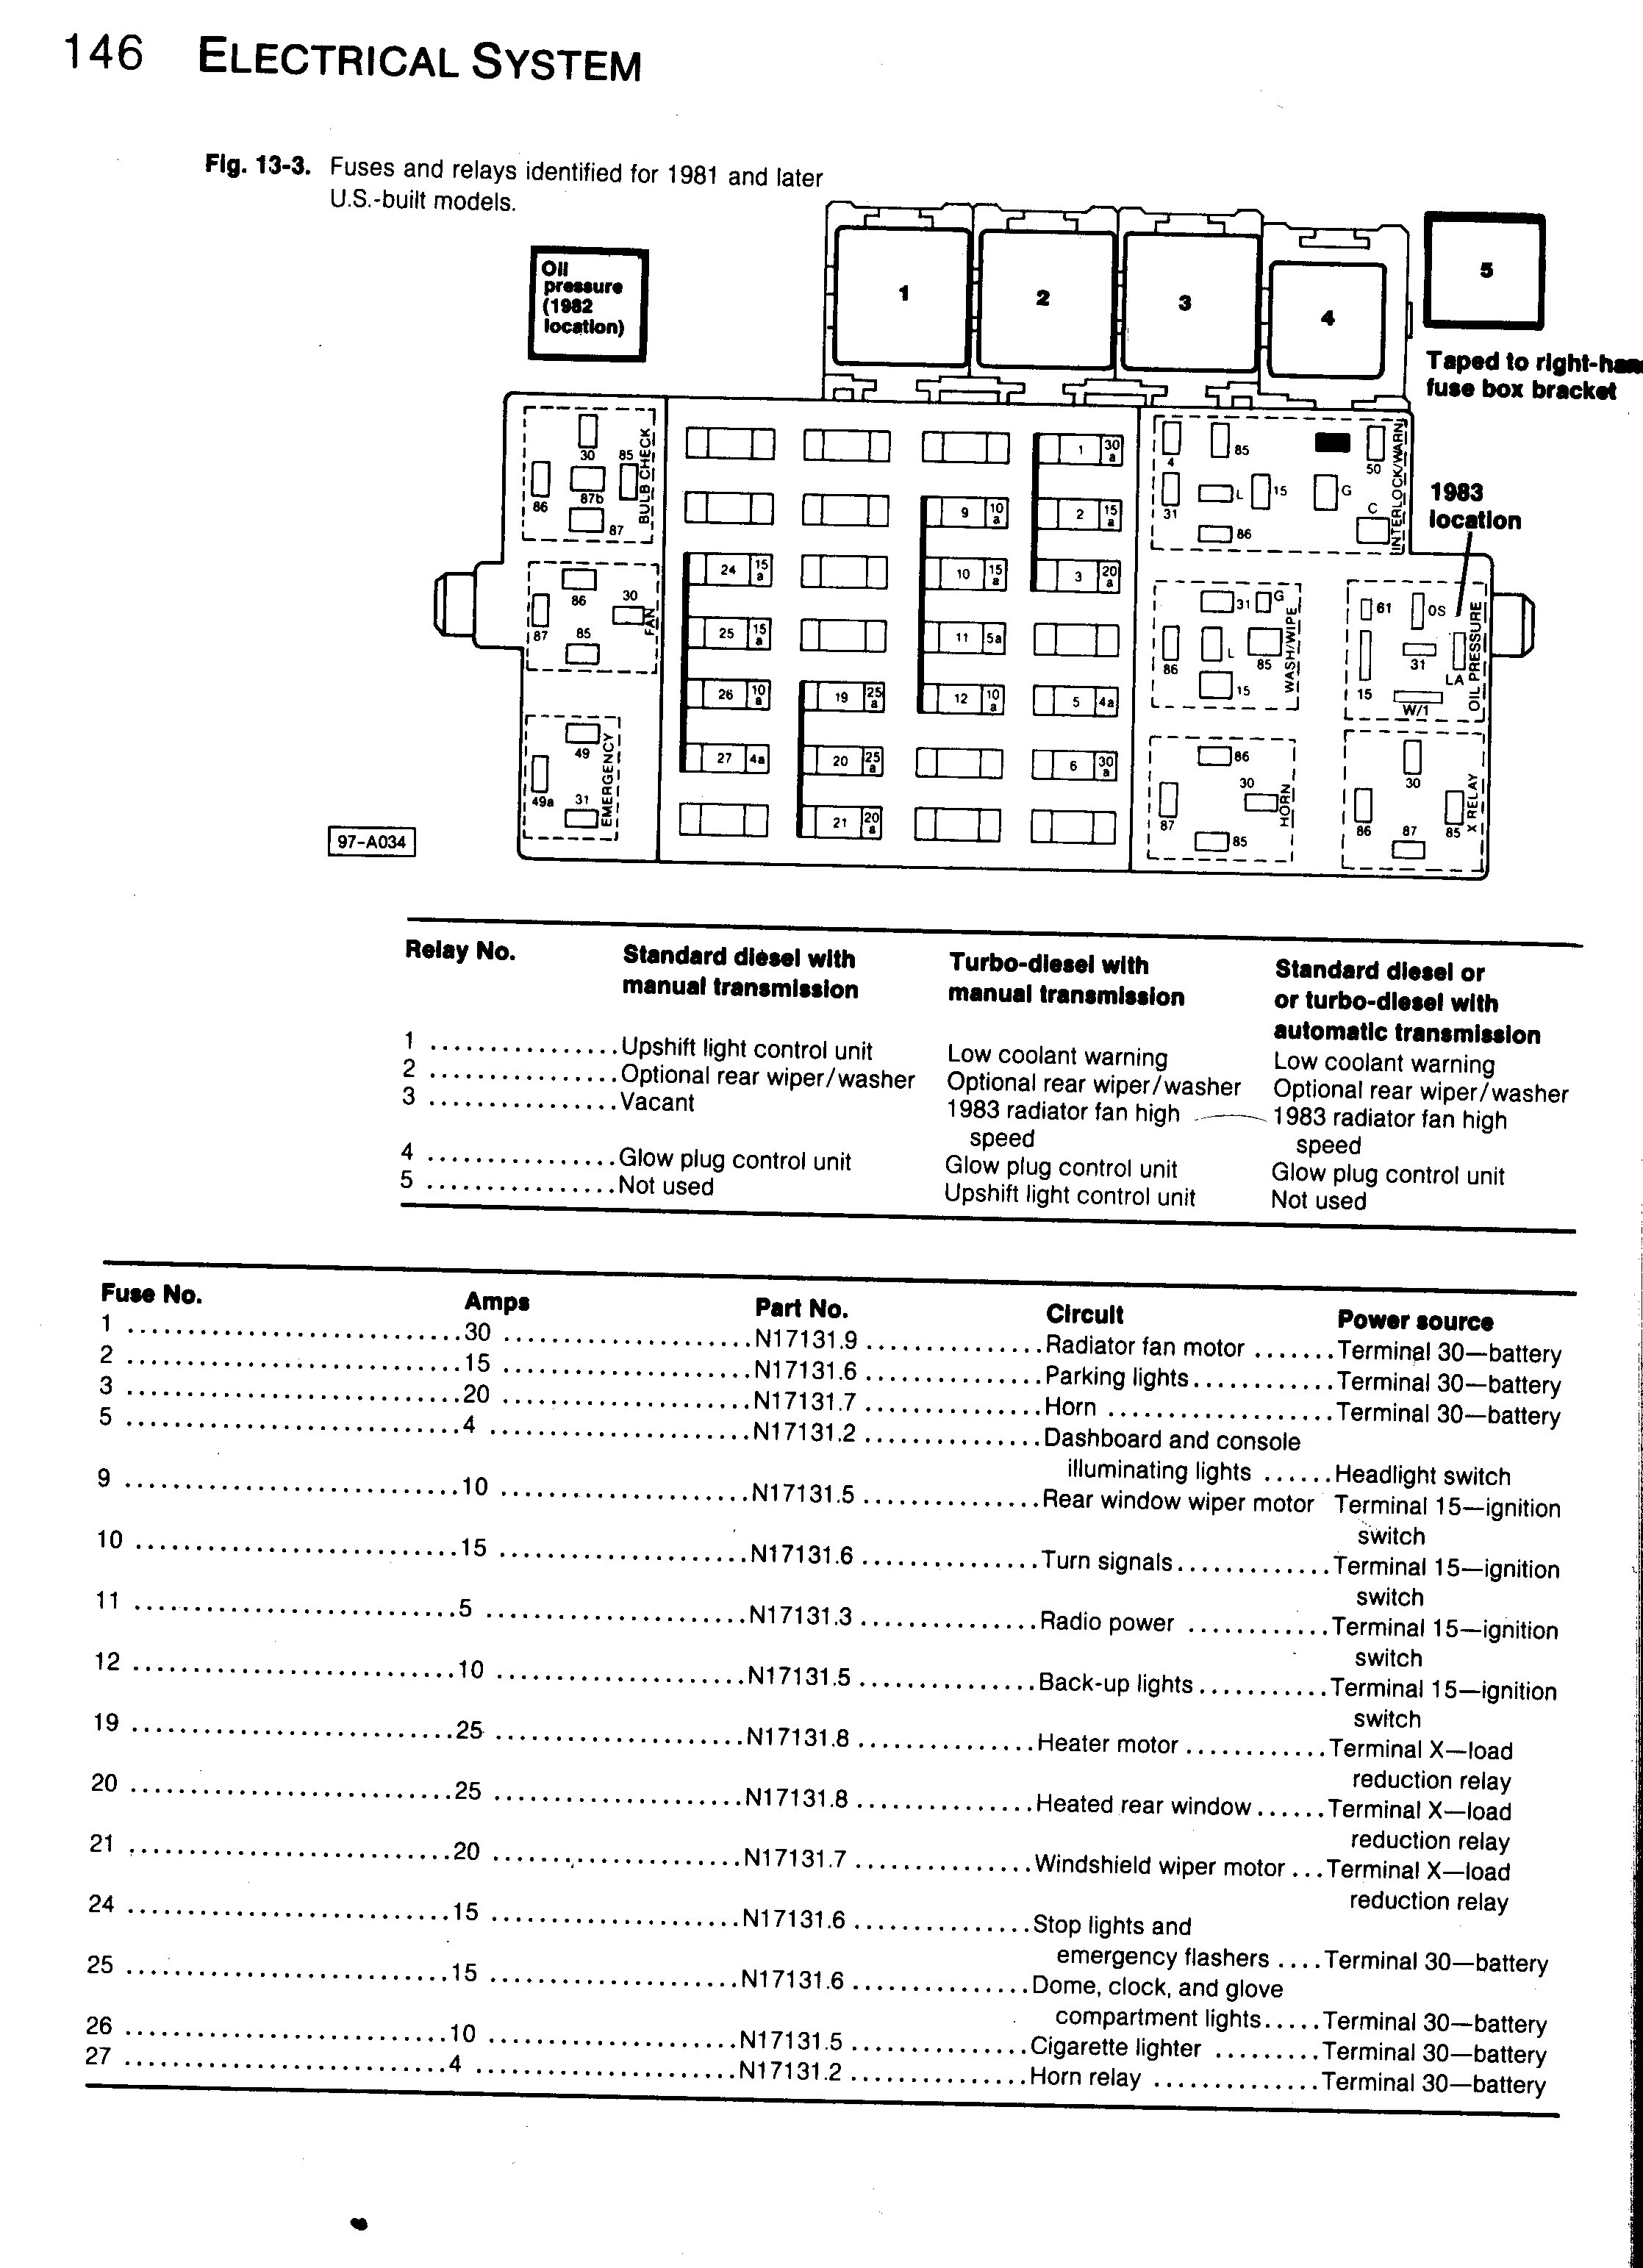 2011 F350 Fuse Box Layout Start Building A Wiring Diagram Ford F250 2002 Vw Jetta Schematic Rh Asparklingjourney Com